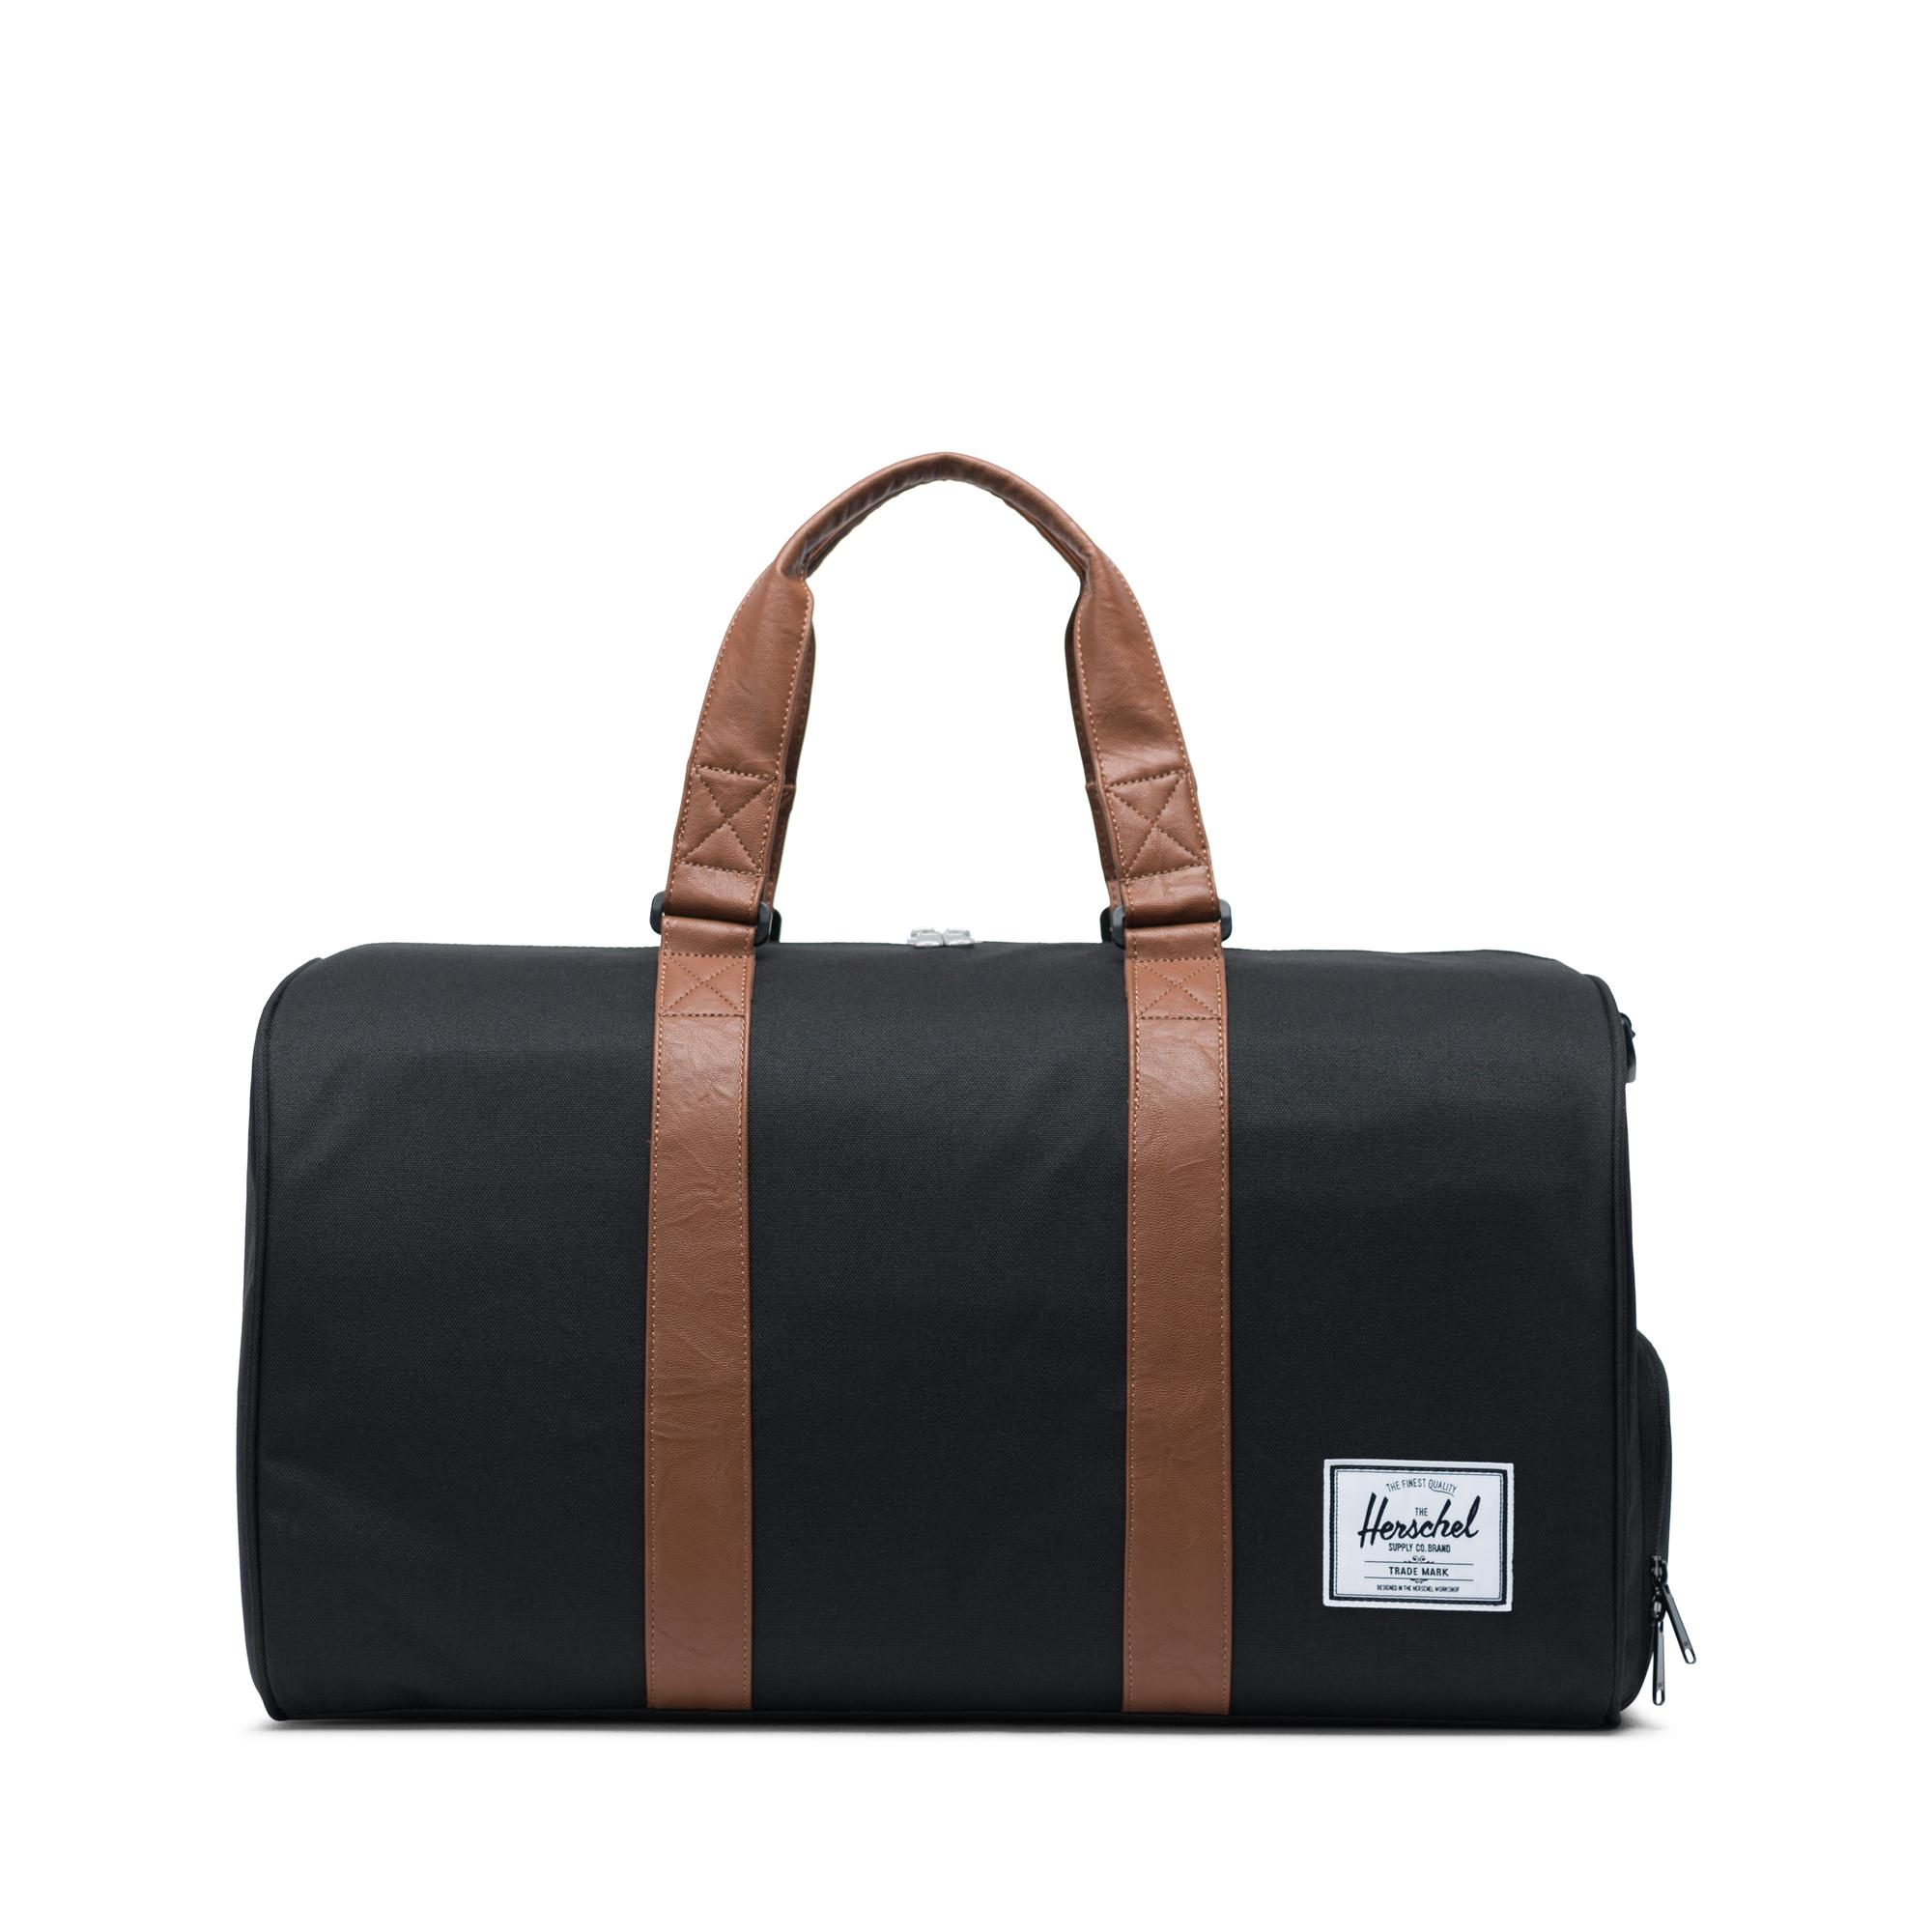 31d84270e818 Novel Duffle